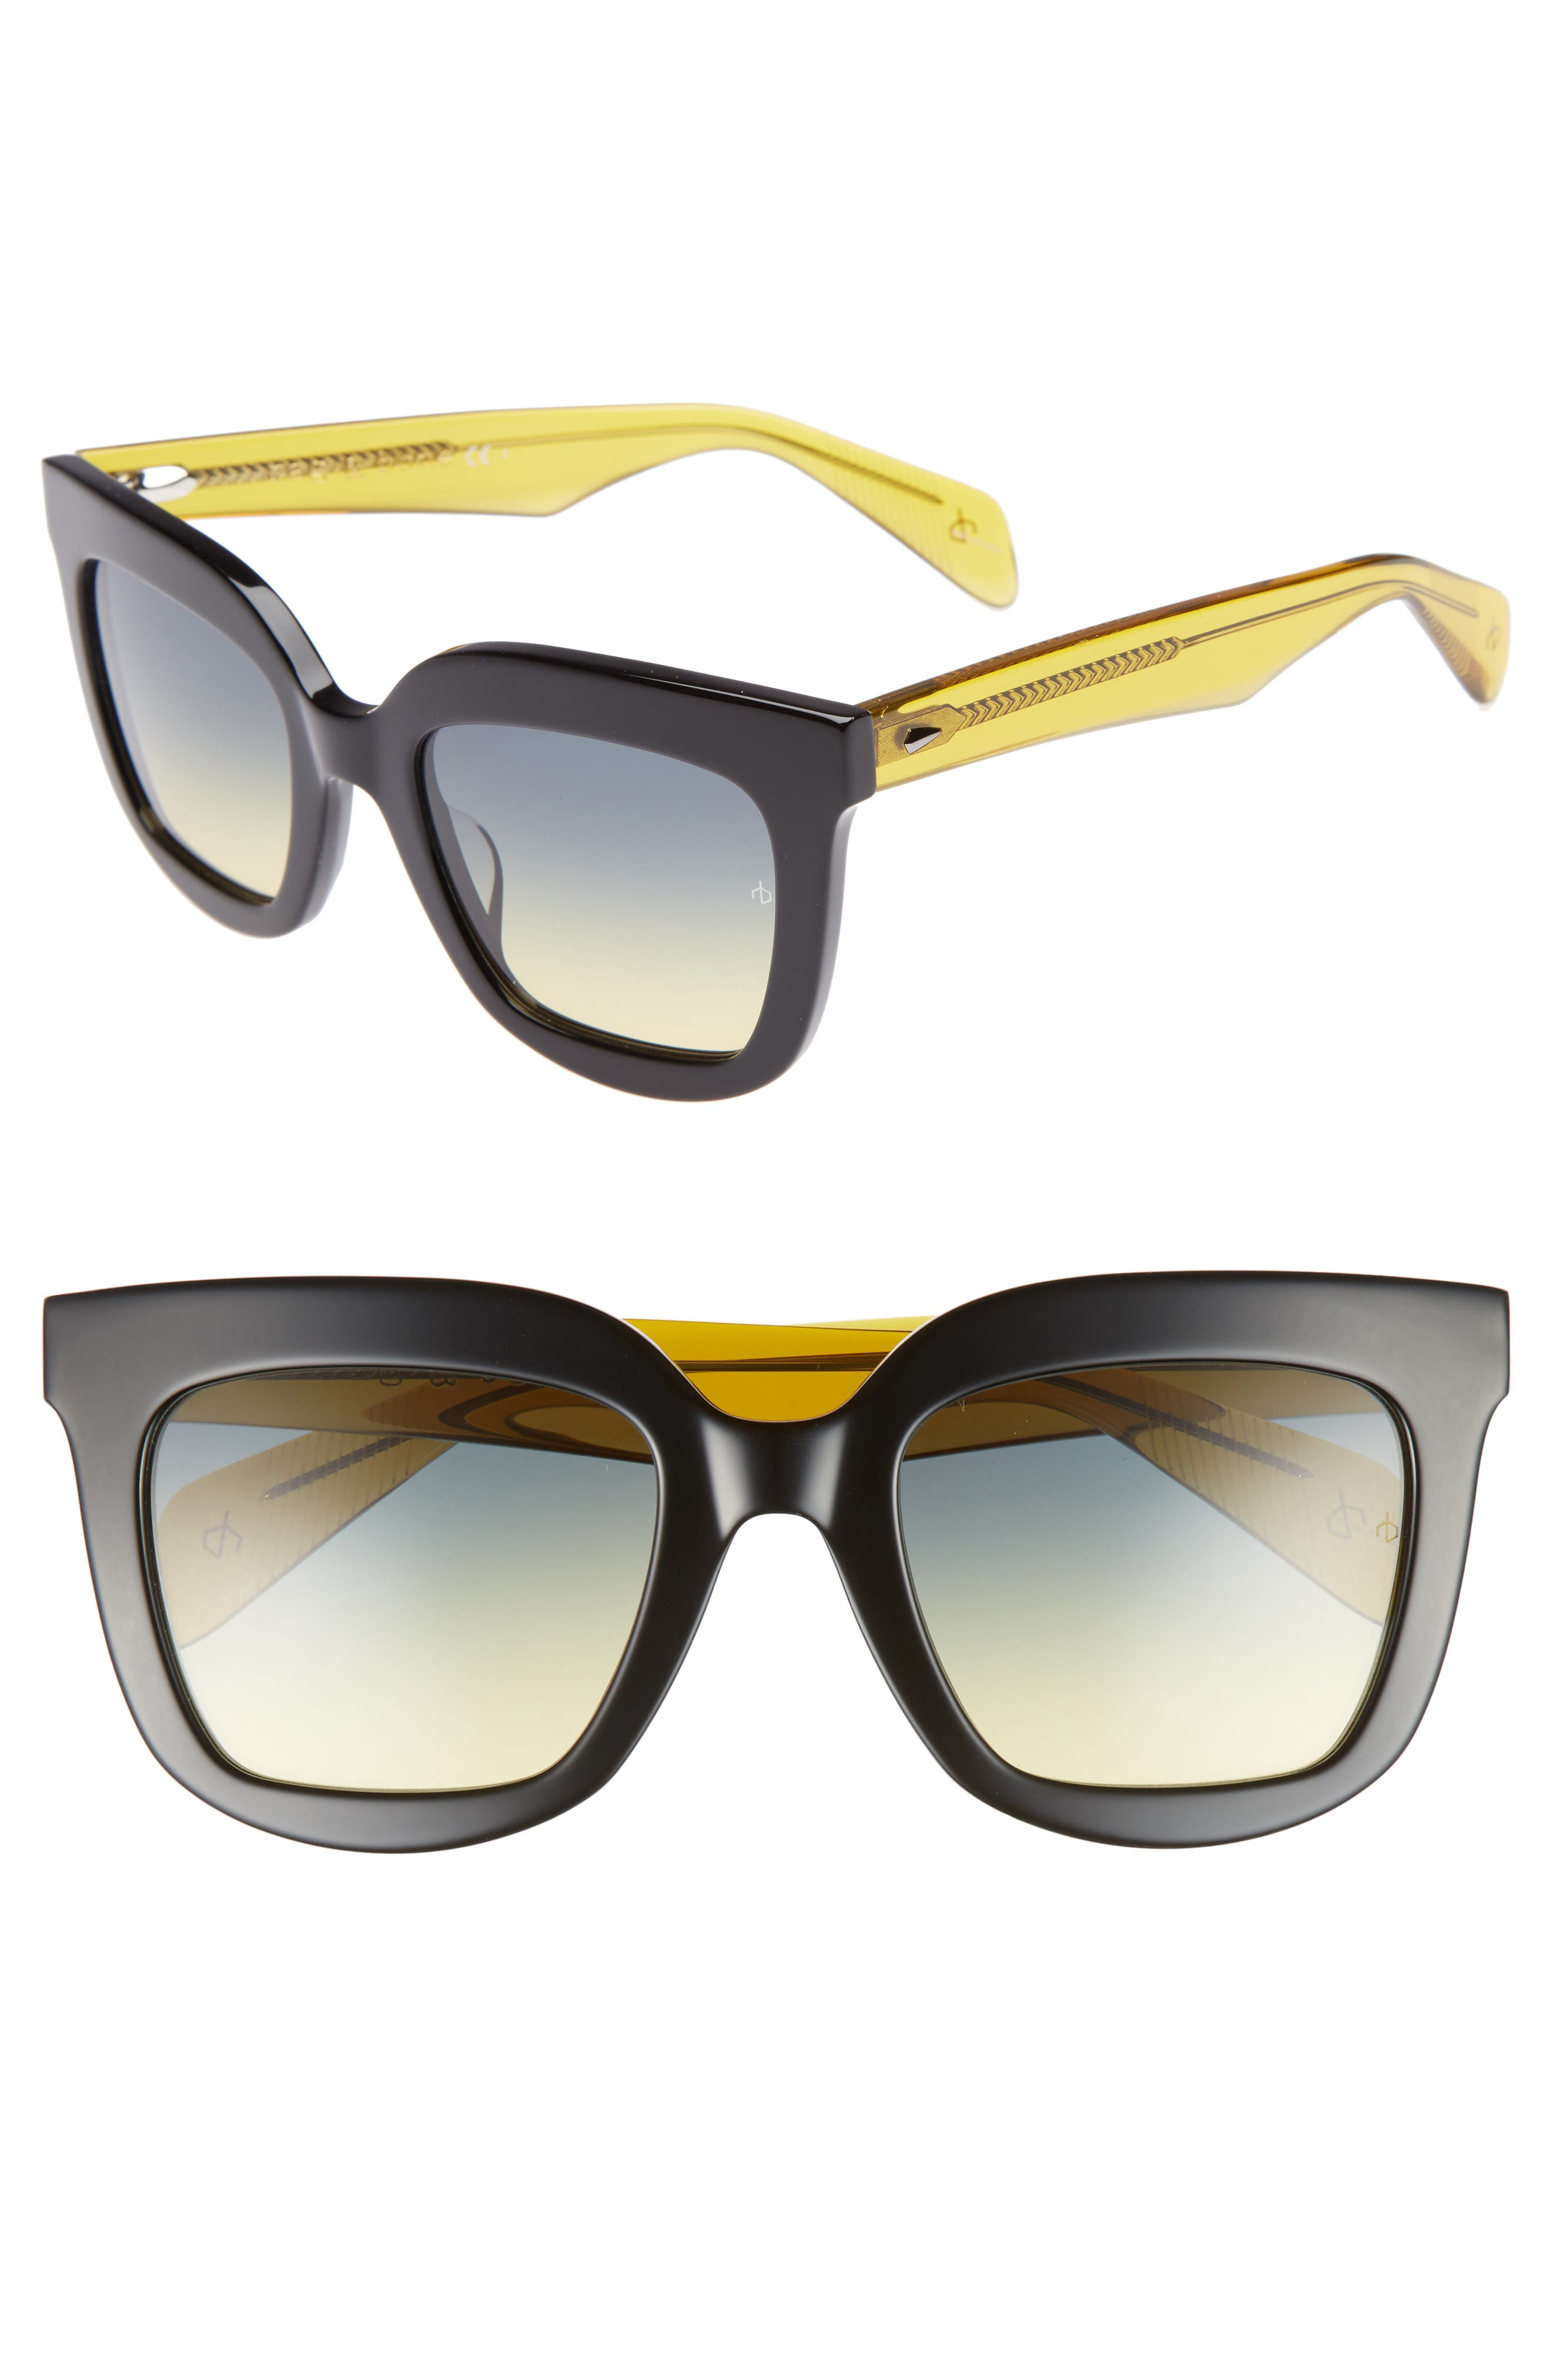 rag & bone 52mm Rectangular Sunglasses